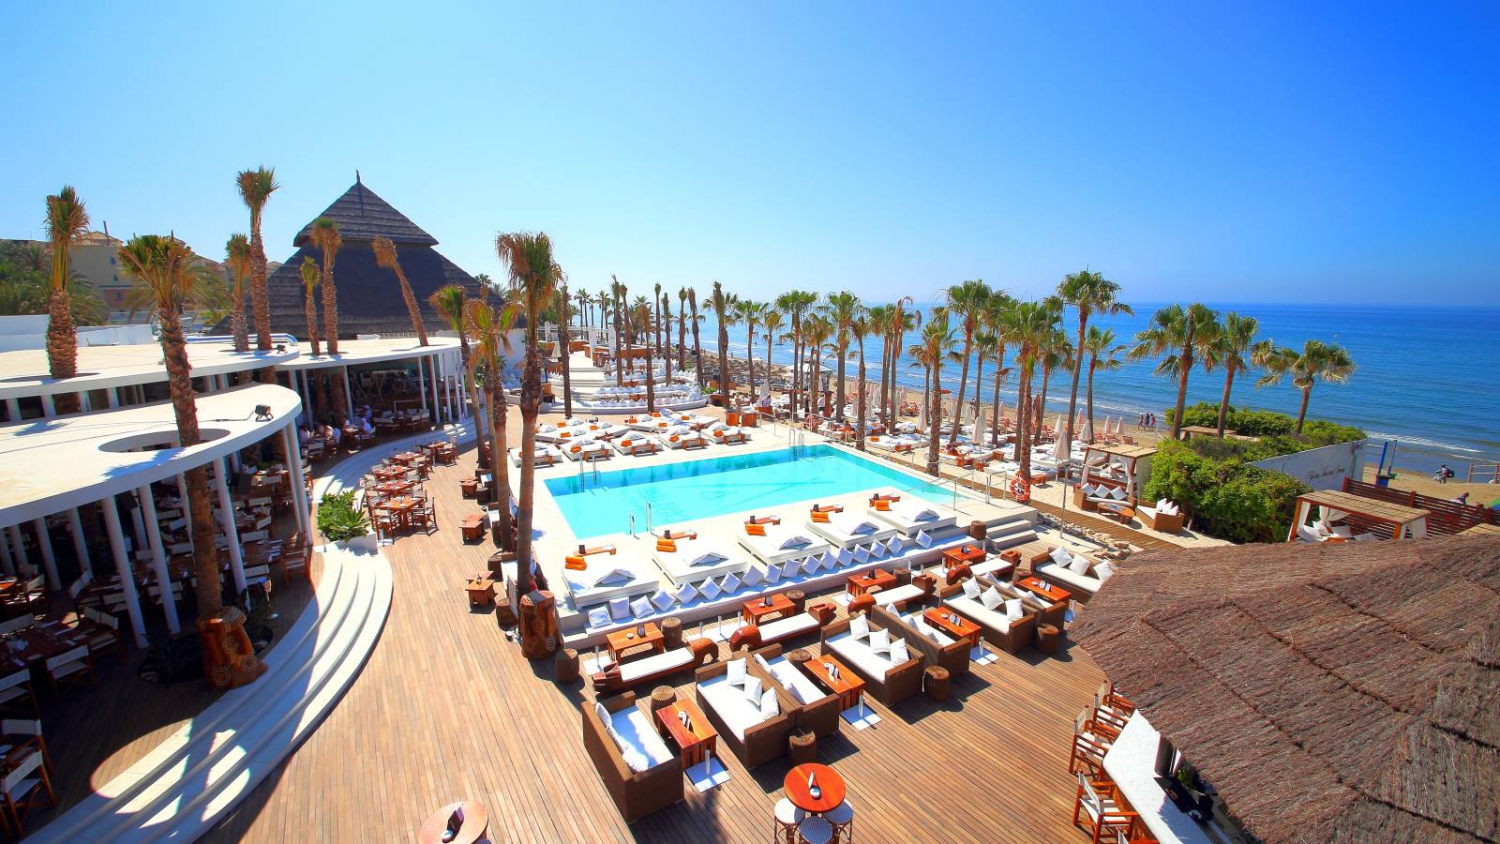 Beach Clubs with Djs in Marbella